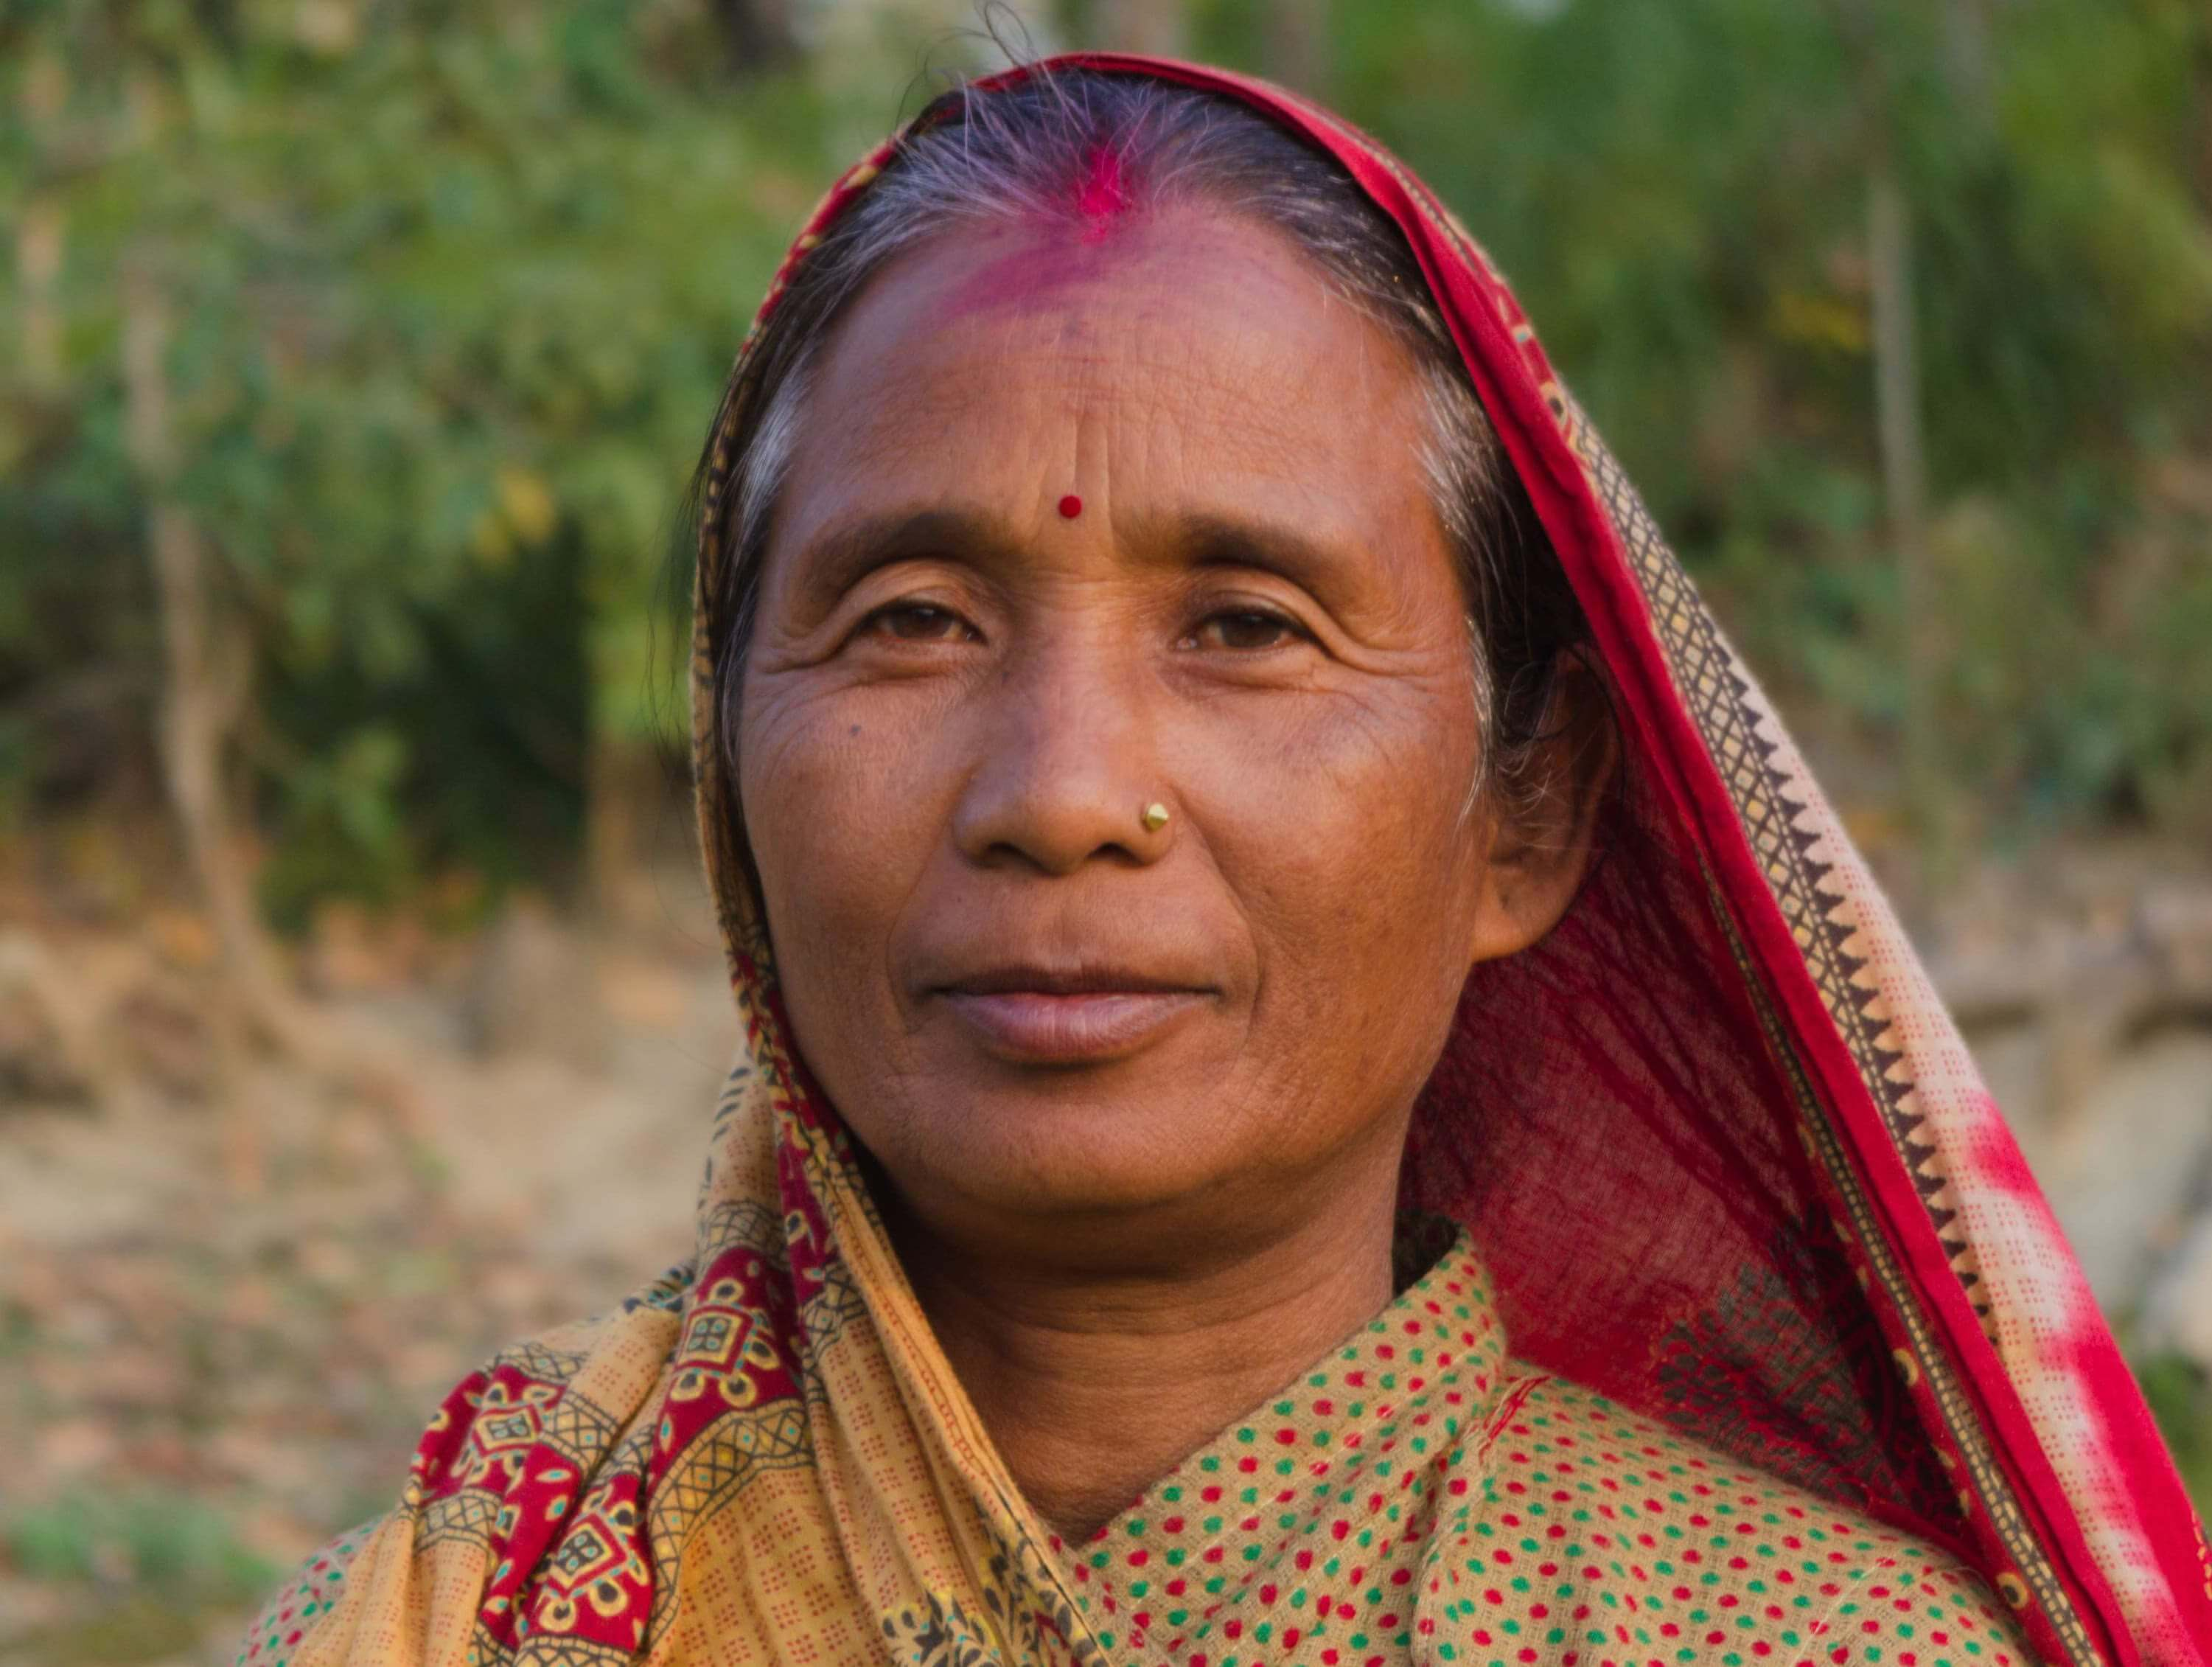 Villagers step up to protect Nepal's tigers